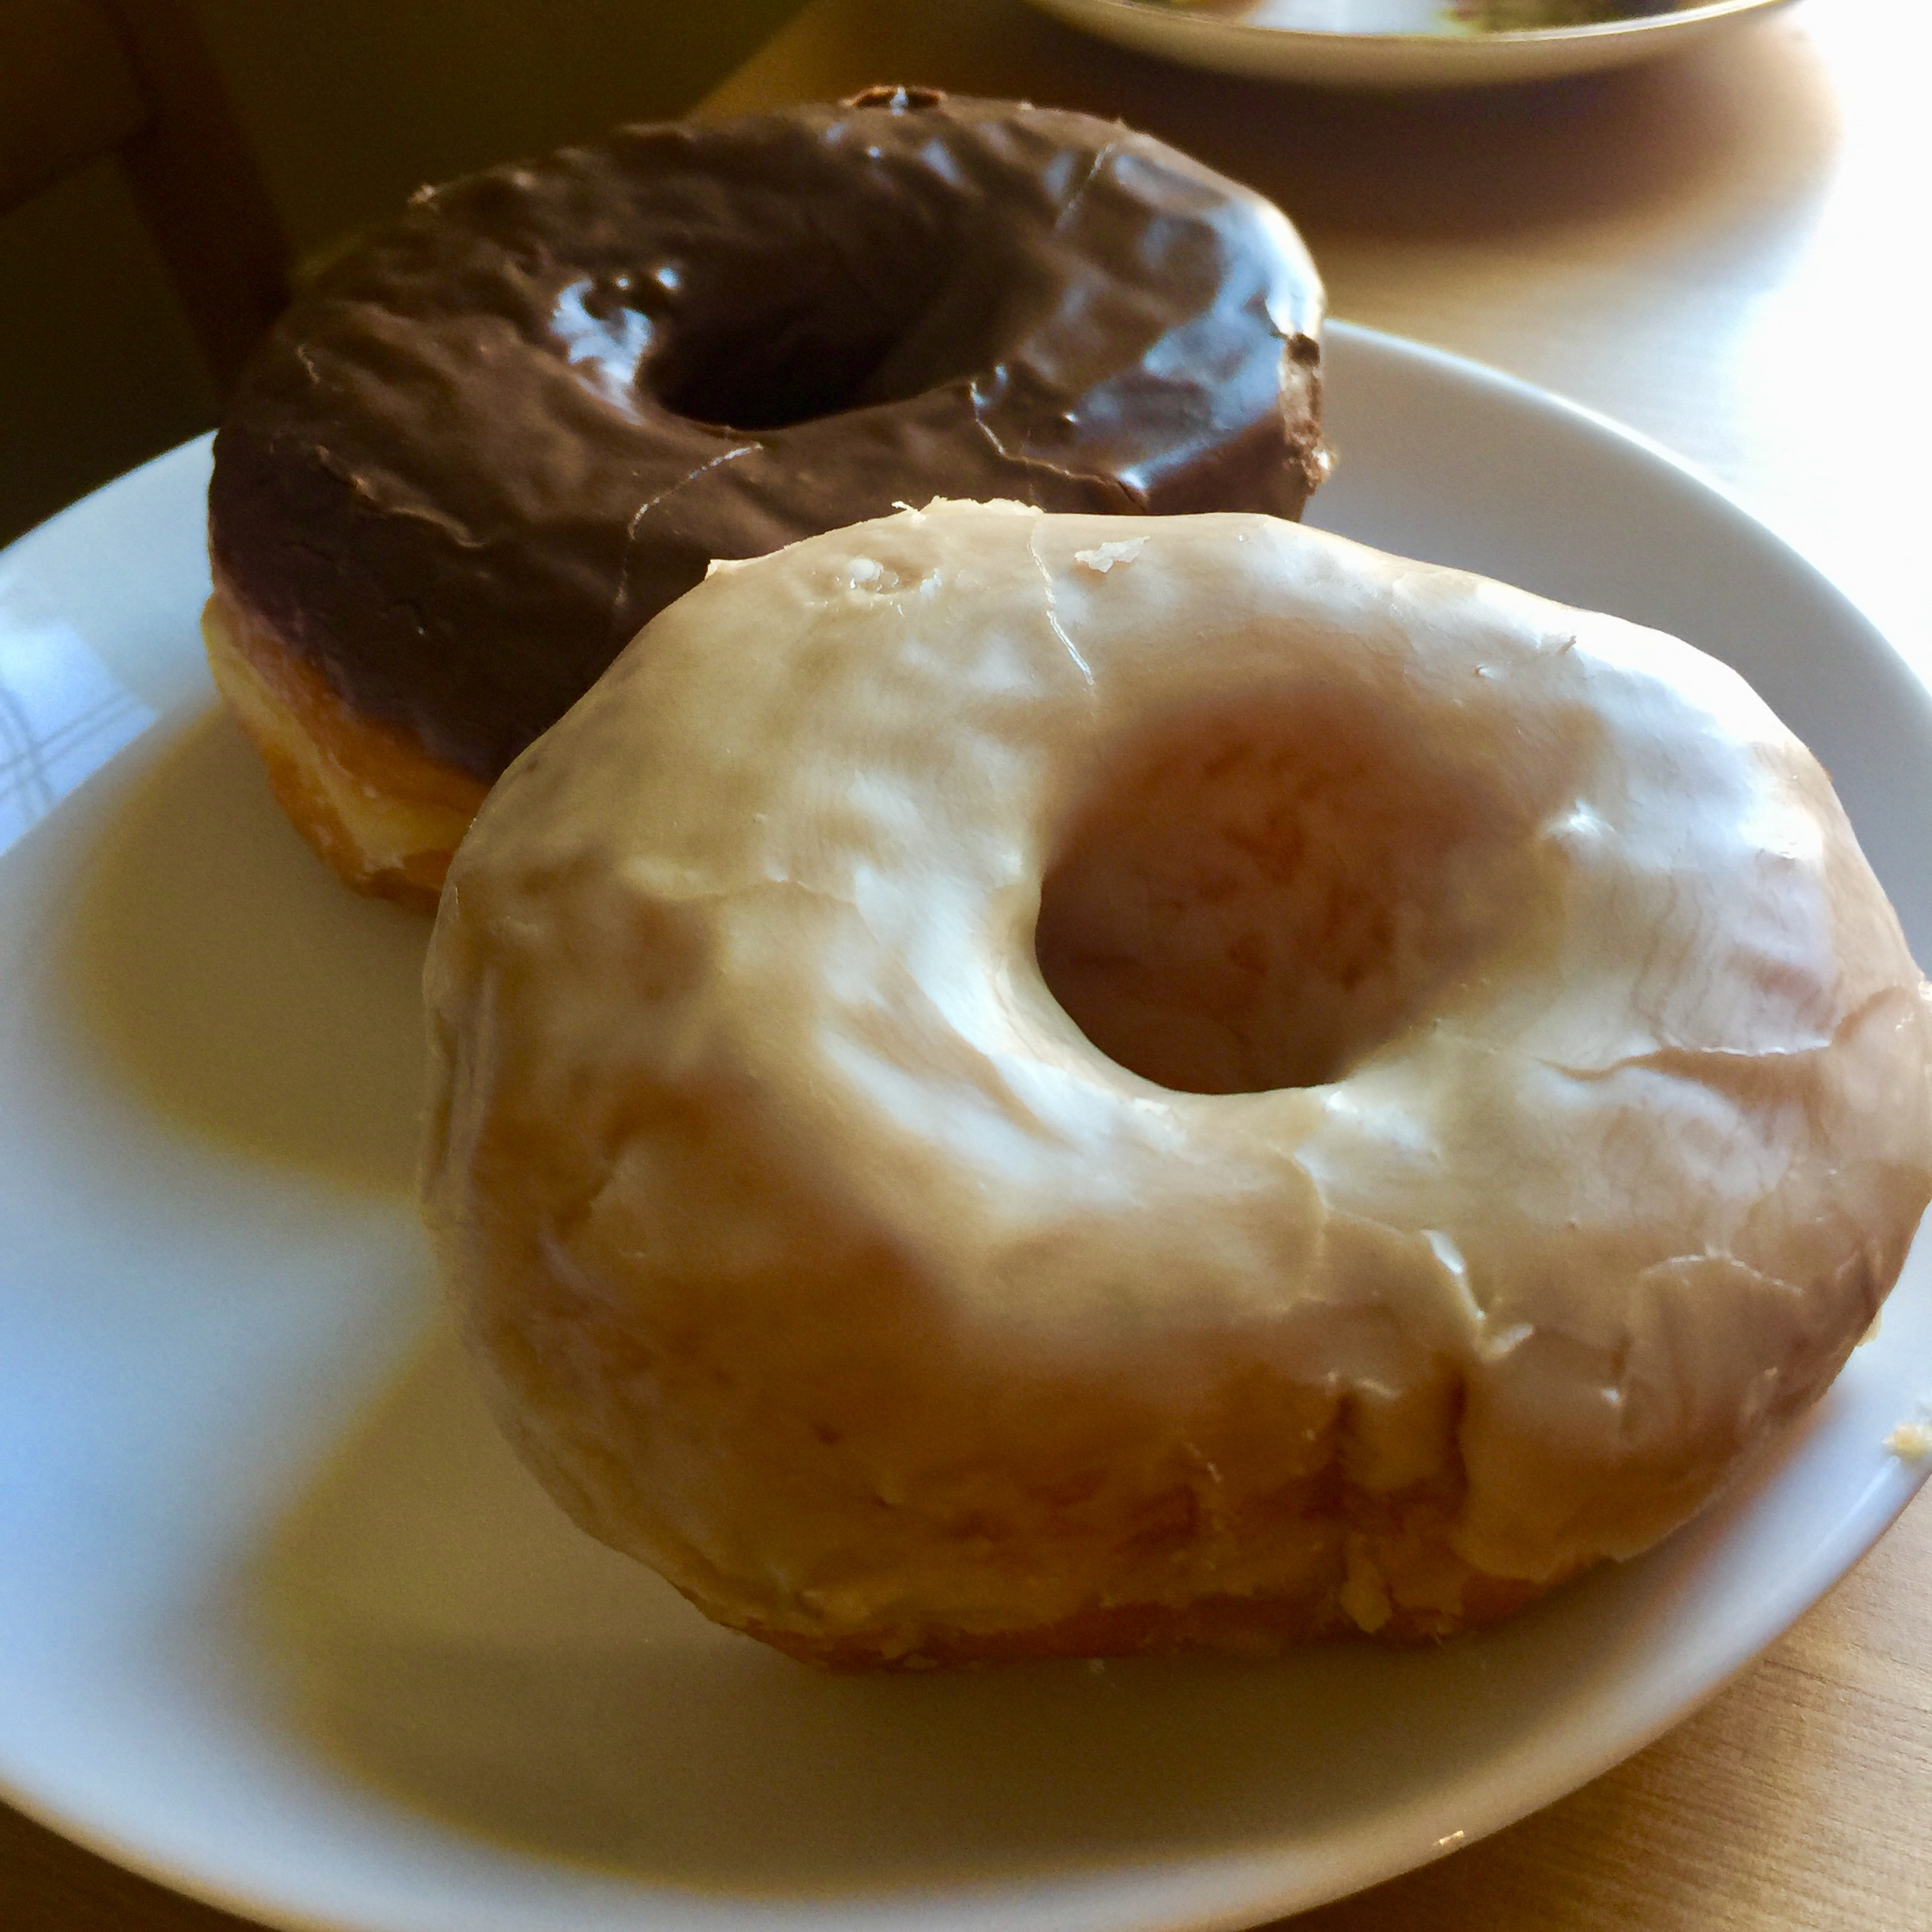 Pictured: actual VG Donuts (before I ate them).